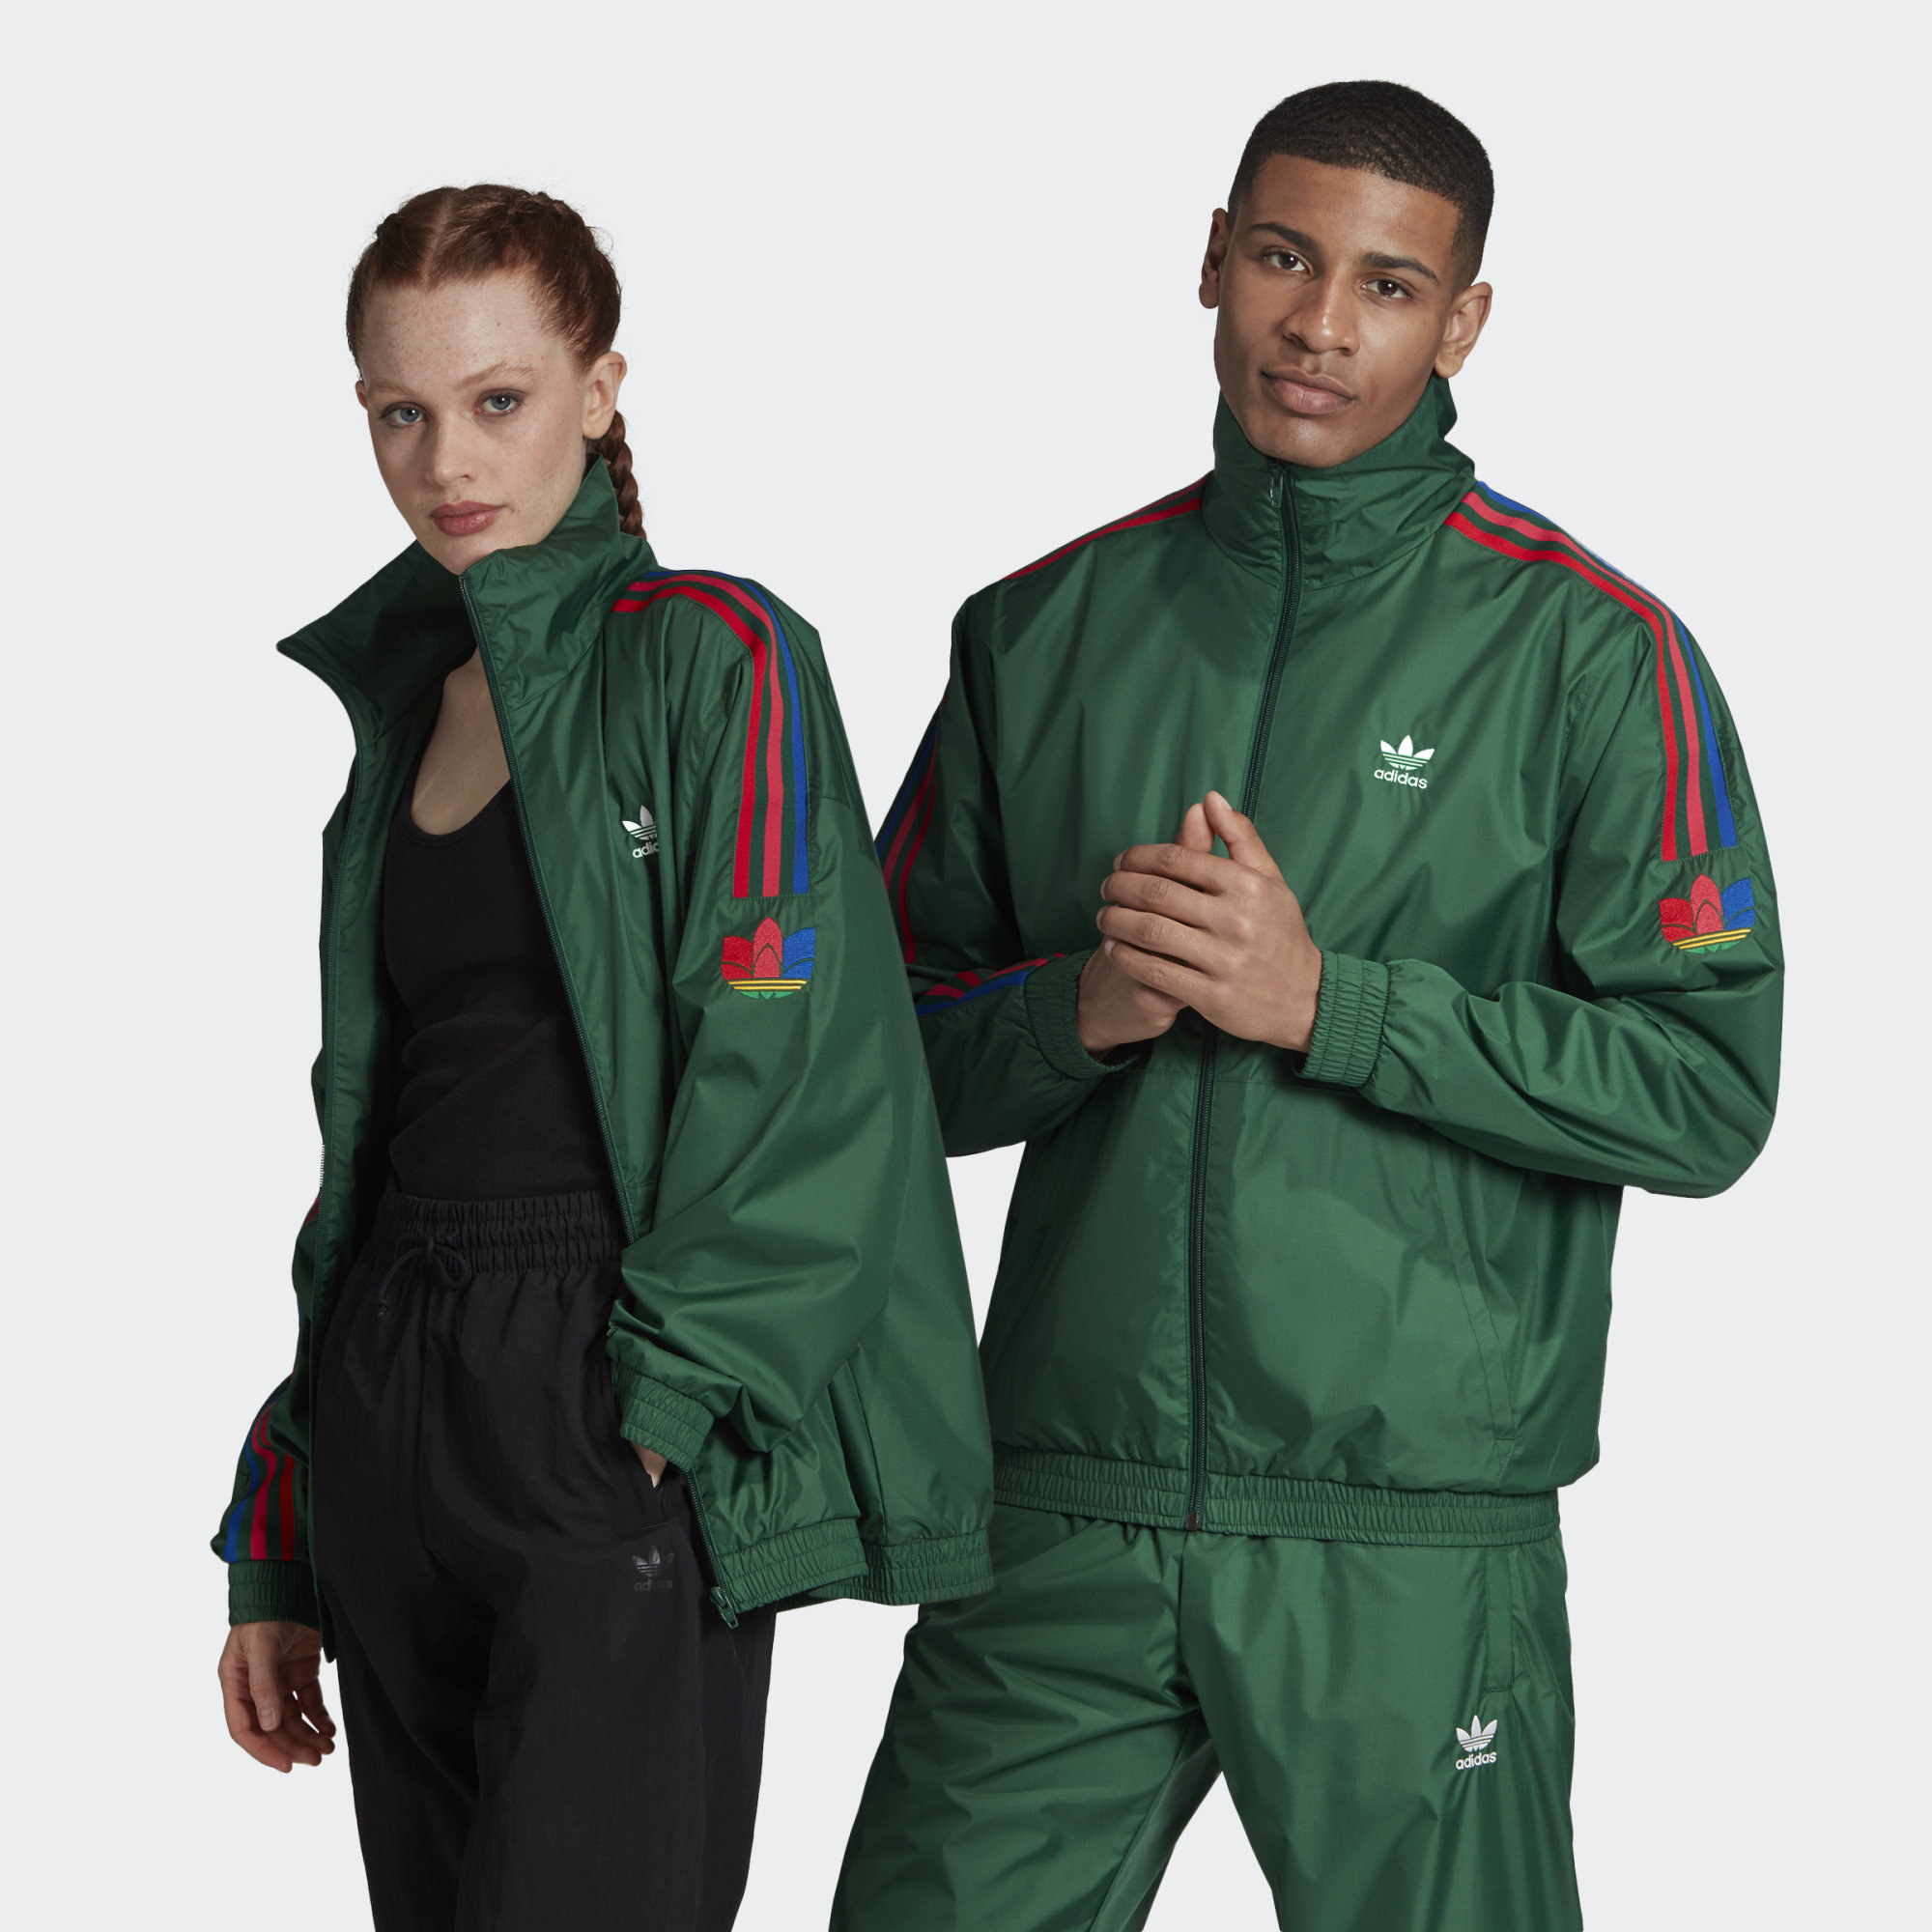 Two models wearing dark green 3-Stripes track jackets